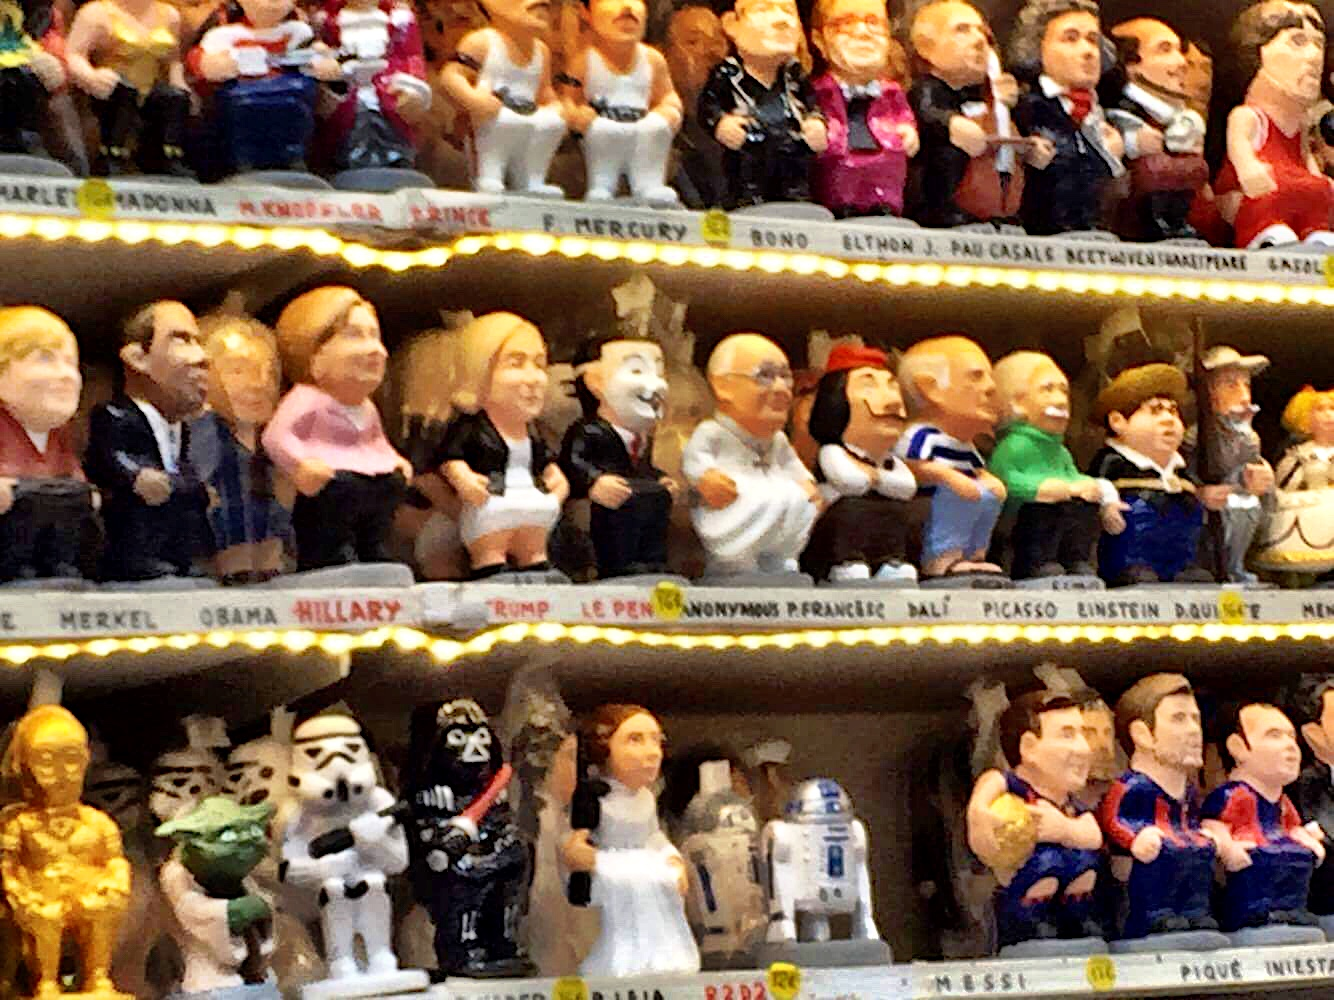 Political, pop culture and sports figures all get the Caganer treatment